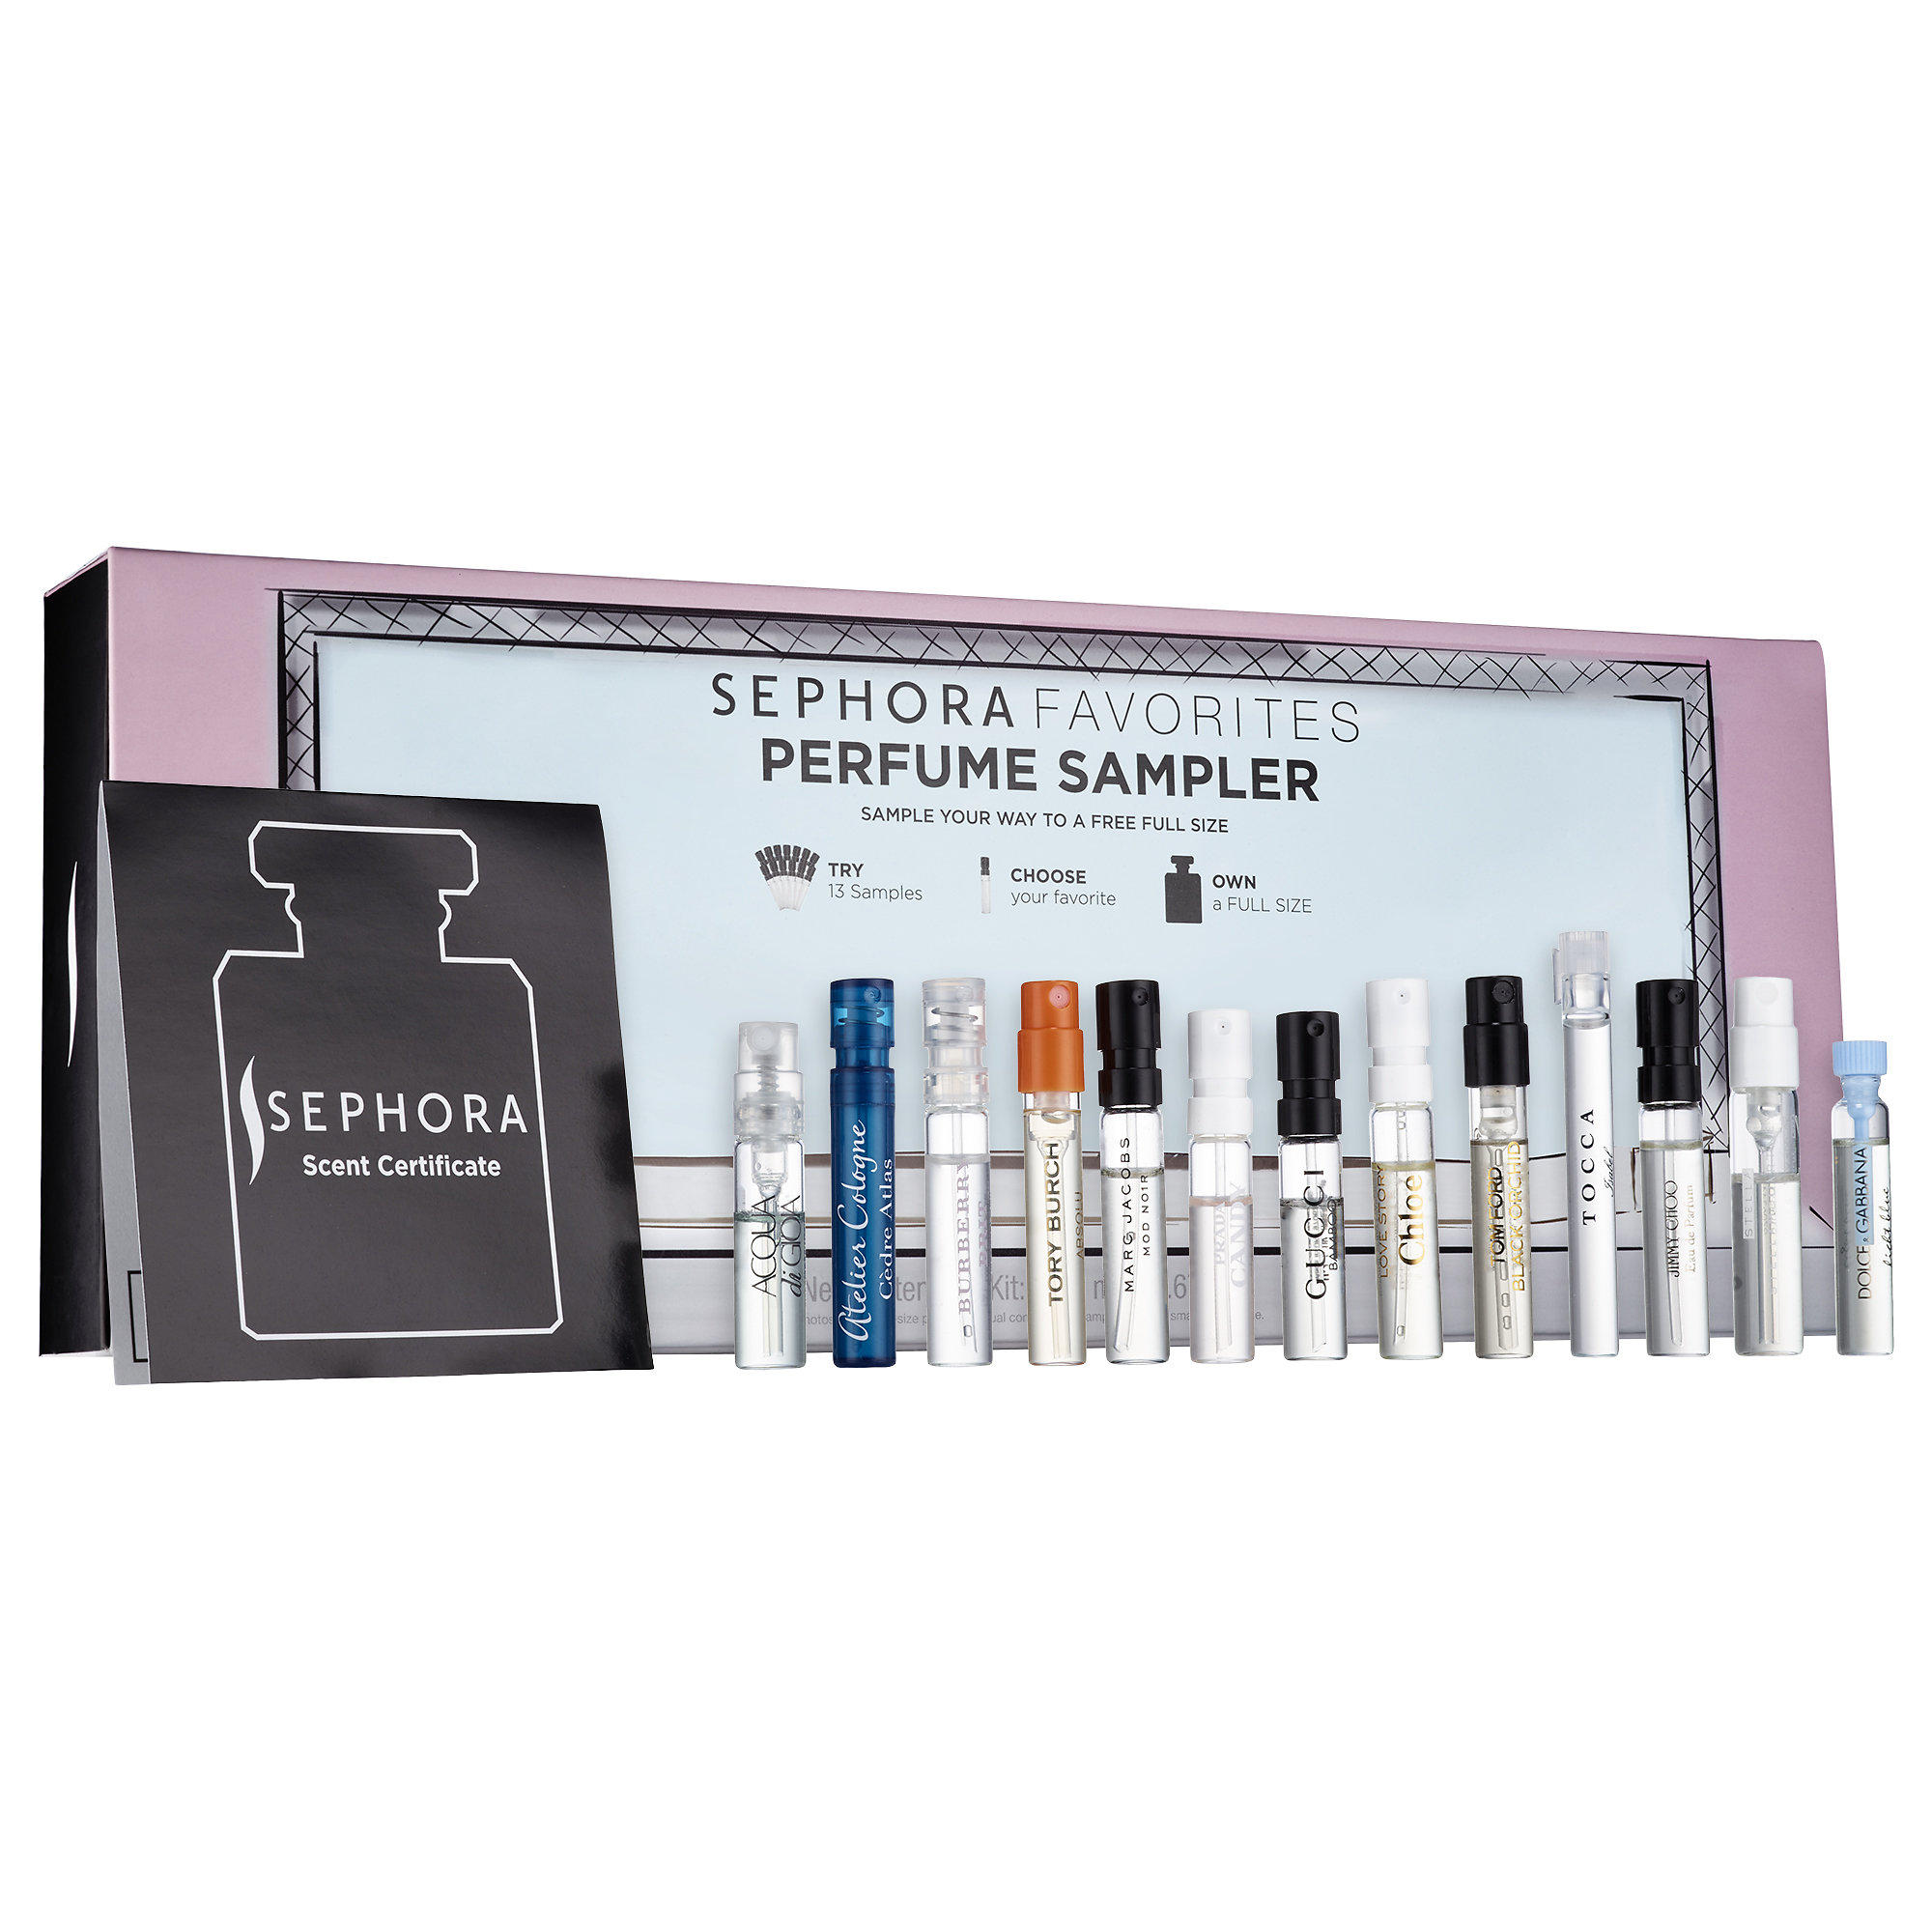 New Release Sephora launched New Sephora Favorites Perfume Sampler